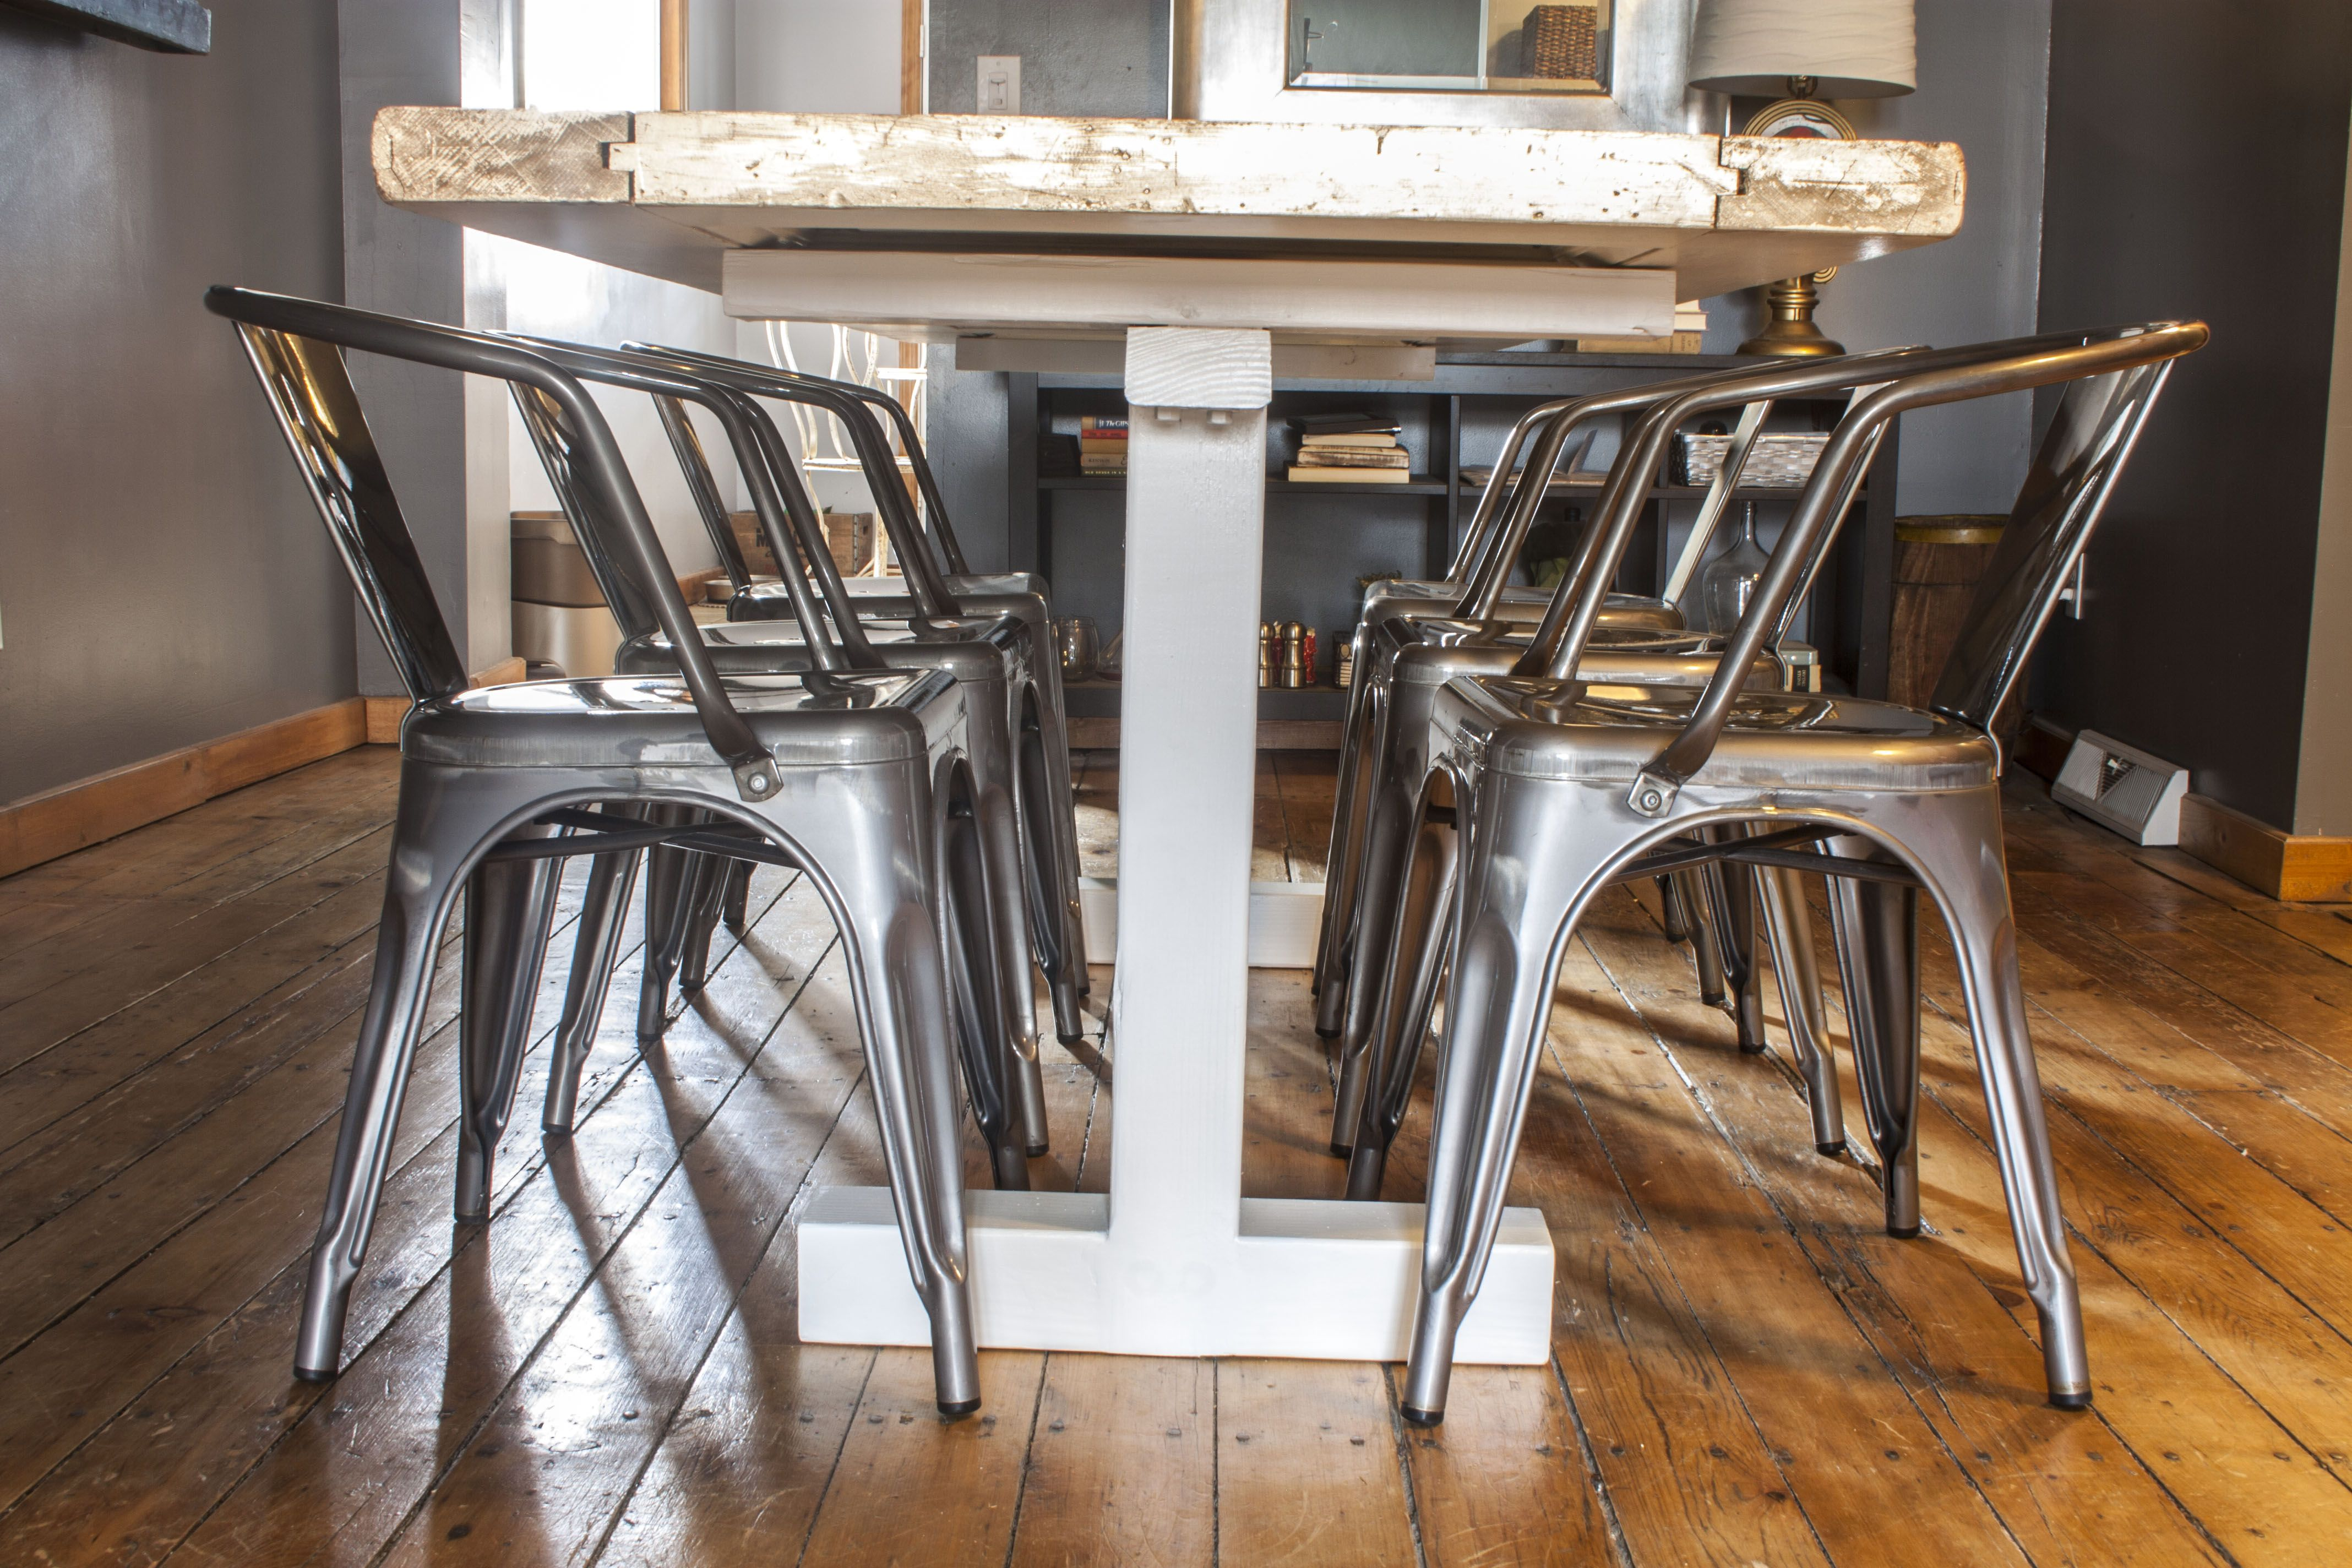 17 Best images about Christmas Wish List on Pinterest   Foyer tables  Metal  chairs and. metal dining chairs target   Furniture Market